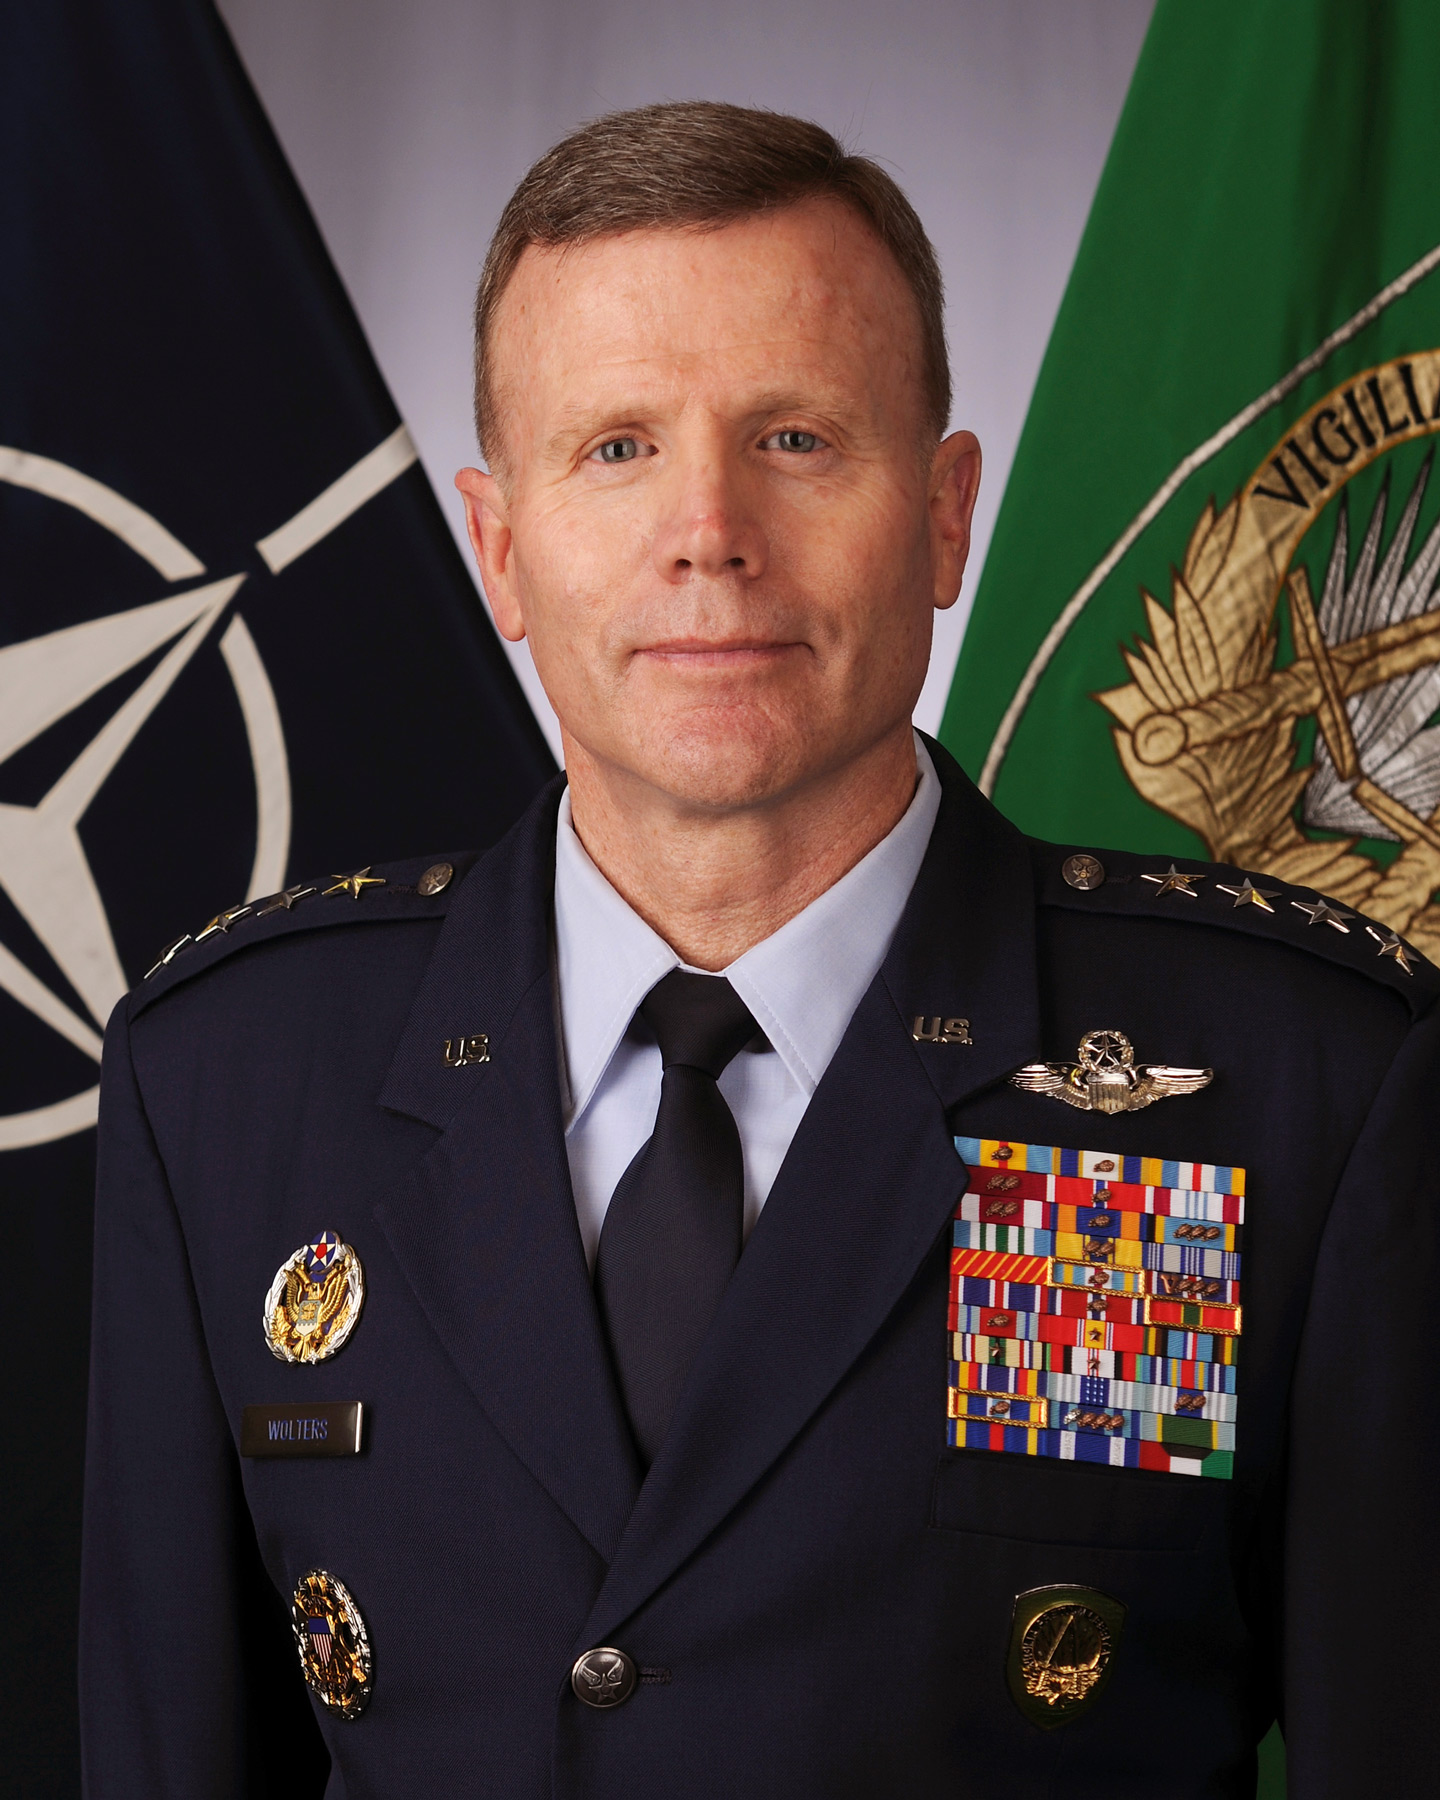 fe2b3dc0e9 General Tod D. Wolters assumed duties as NATO's 19th Supreme Allied  Commander Europe (SACEUR) on May 3, 2019. As SACEUR, he is one of NATO's  two strategic ...